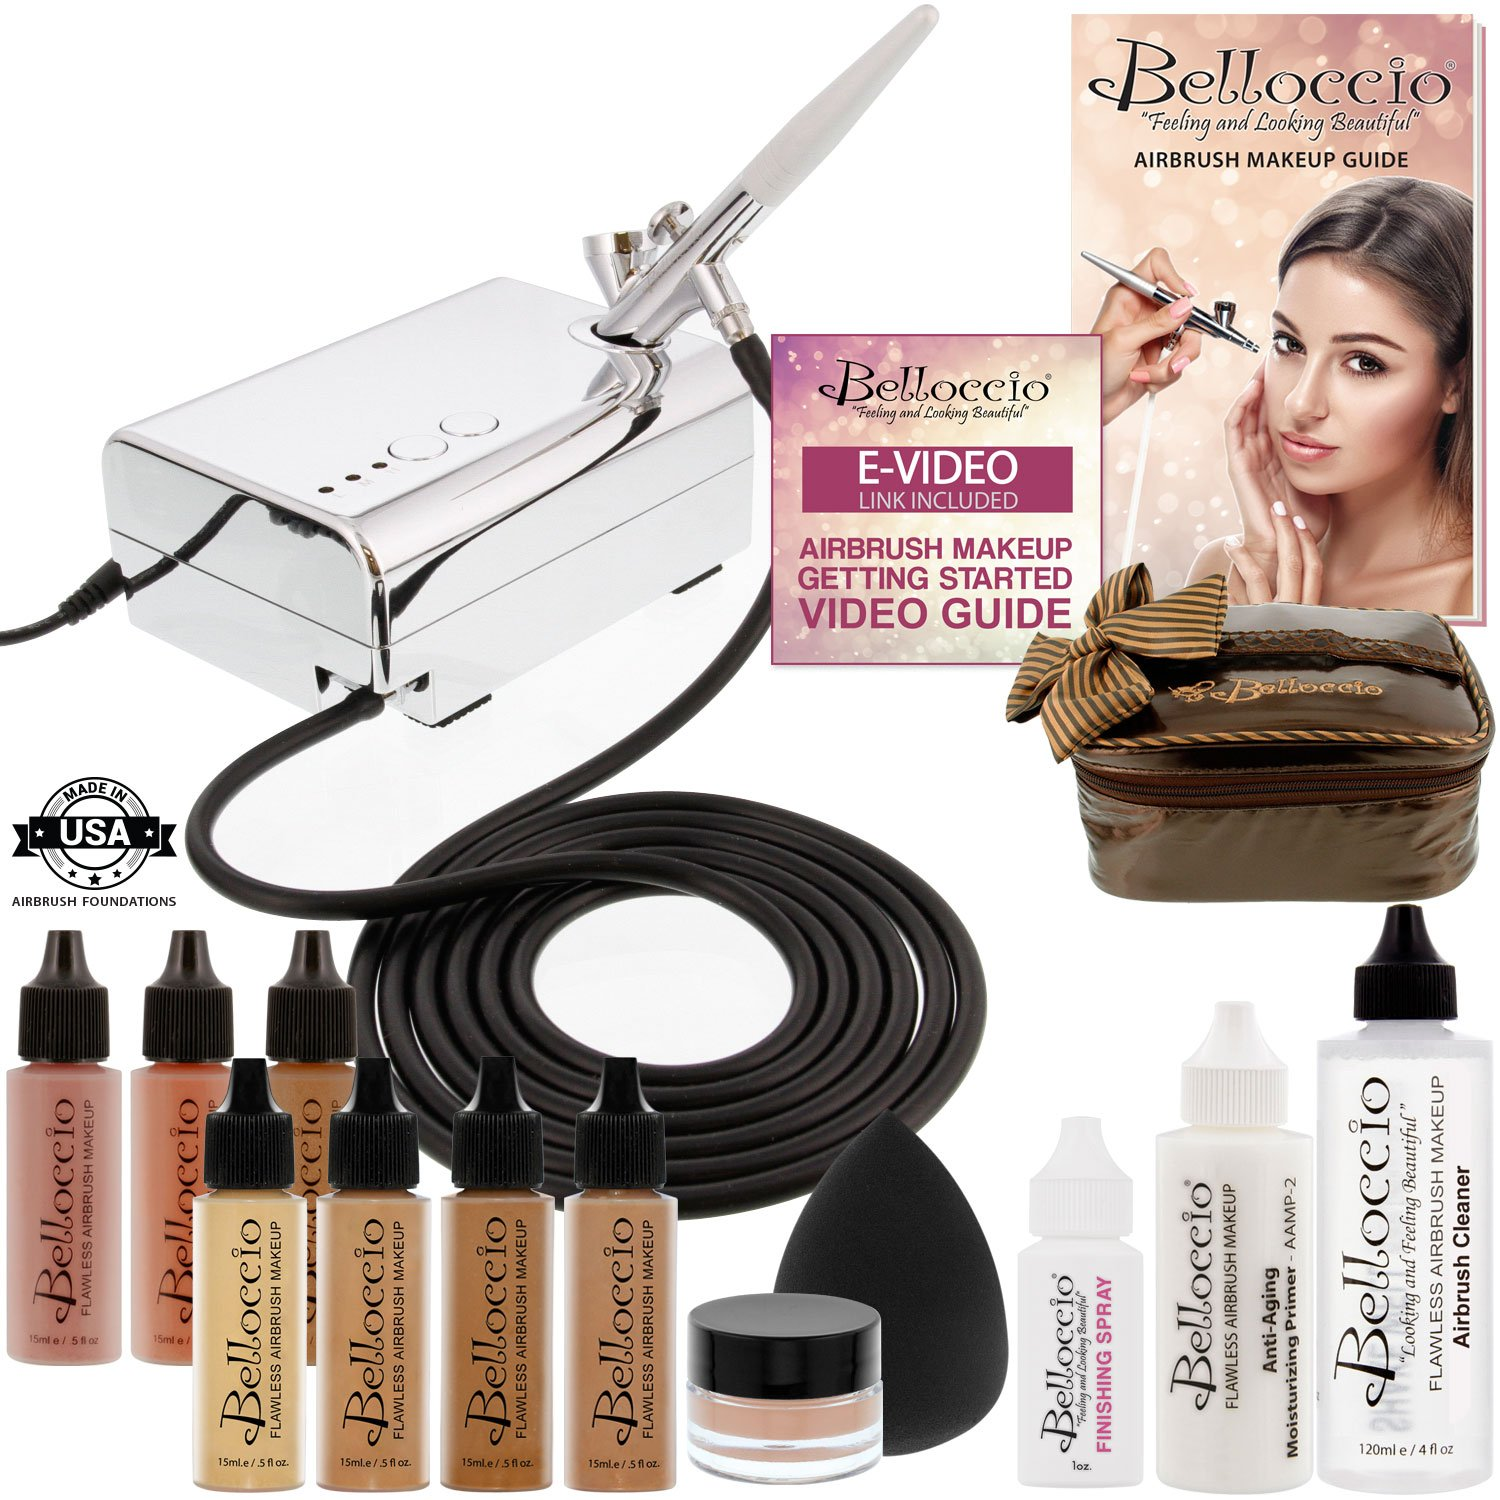 Belloccio Professional Beauty Deluxe Airbrush Cosmetic Makeup System with 5 Dark Shades of Foundation in 1/2 oz Bottles - Kit includes Blush, Bronzer and Highlighter and 3 Free Bonus Items, Video Link KIT-DLX-DARK5